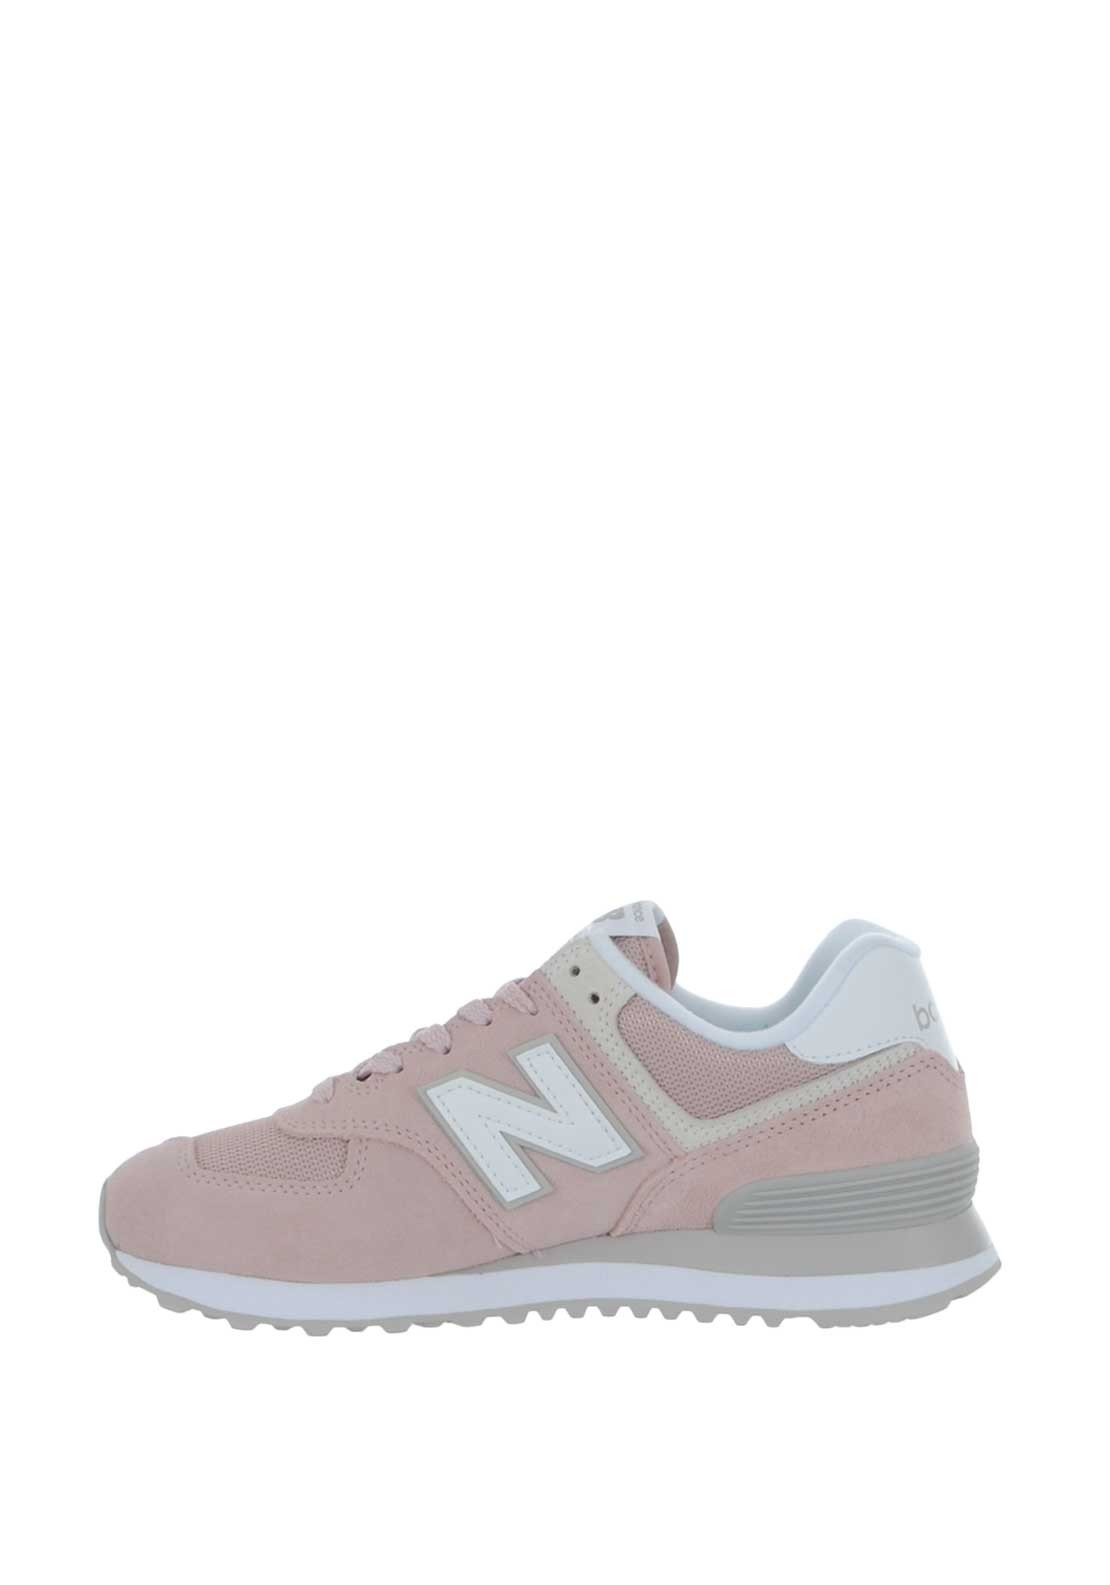 New Balance Womens 574 Suede Trainers, Pink